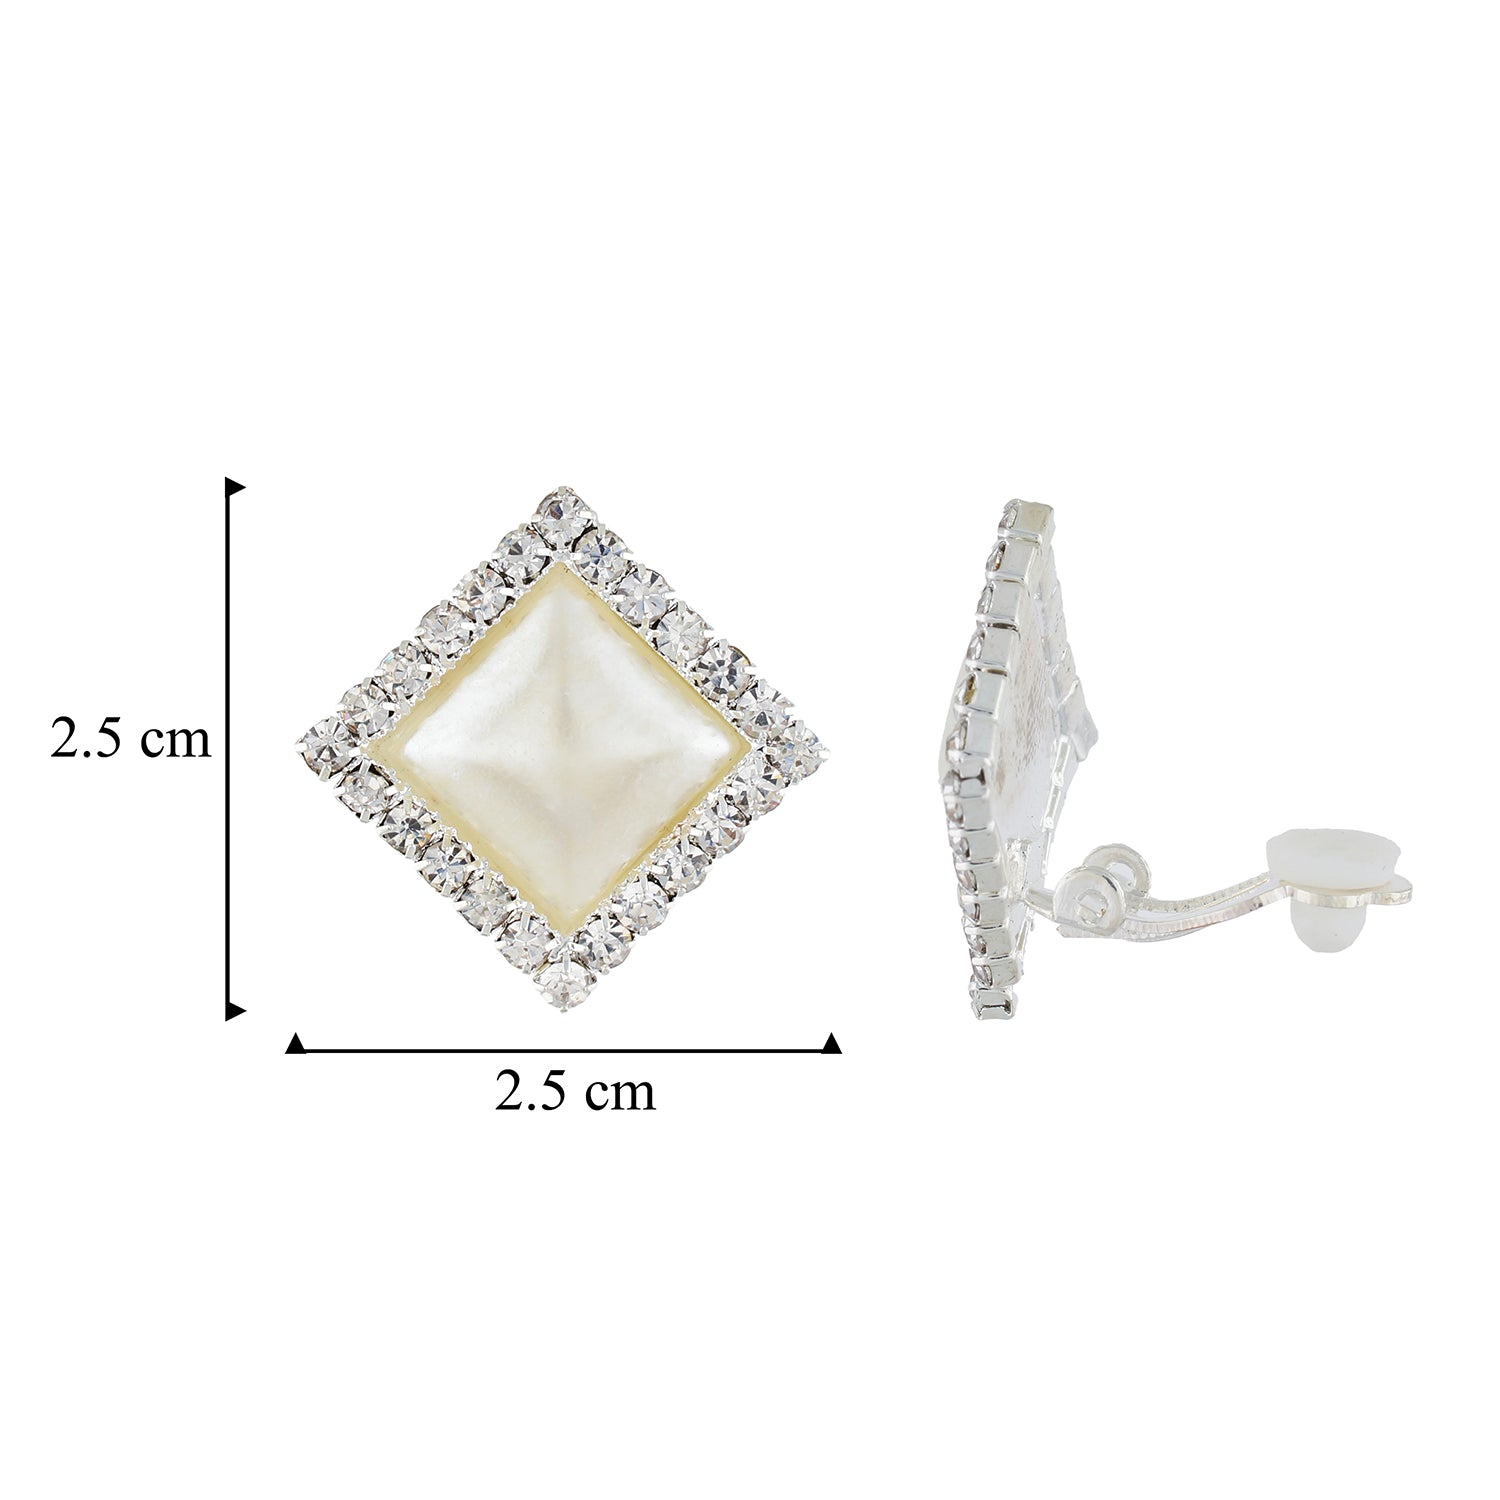 Appealing White and Silver Colour Diamond Shape Alloy Clip On Earrings for Girls with on Pierced Ears